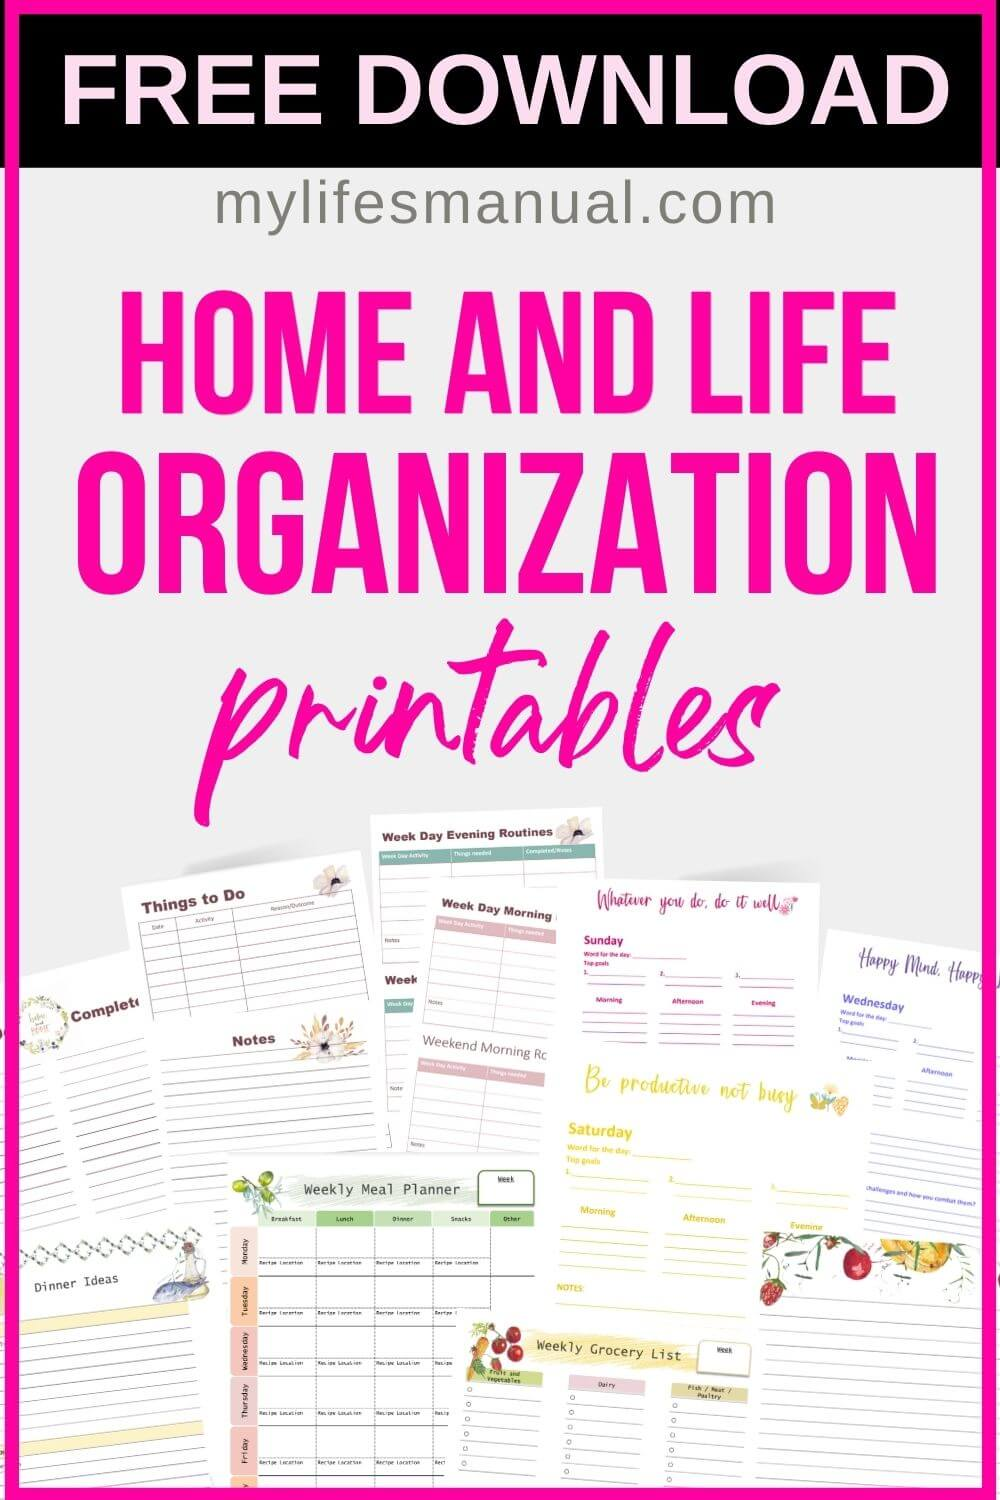 Printable PlanneLooking for free planner printables to help you with organizing and planning? Planners are a great help in managing home and life. You can use planner pages in everything! Using planners, you will be organized which will result in less stress and overwhelm! We have printable planner pages for different life categories that you can download for free. You can print out multiple pages to create your own binder or add these free planner pages to your existing planners.r Pages Free